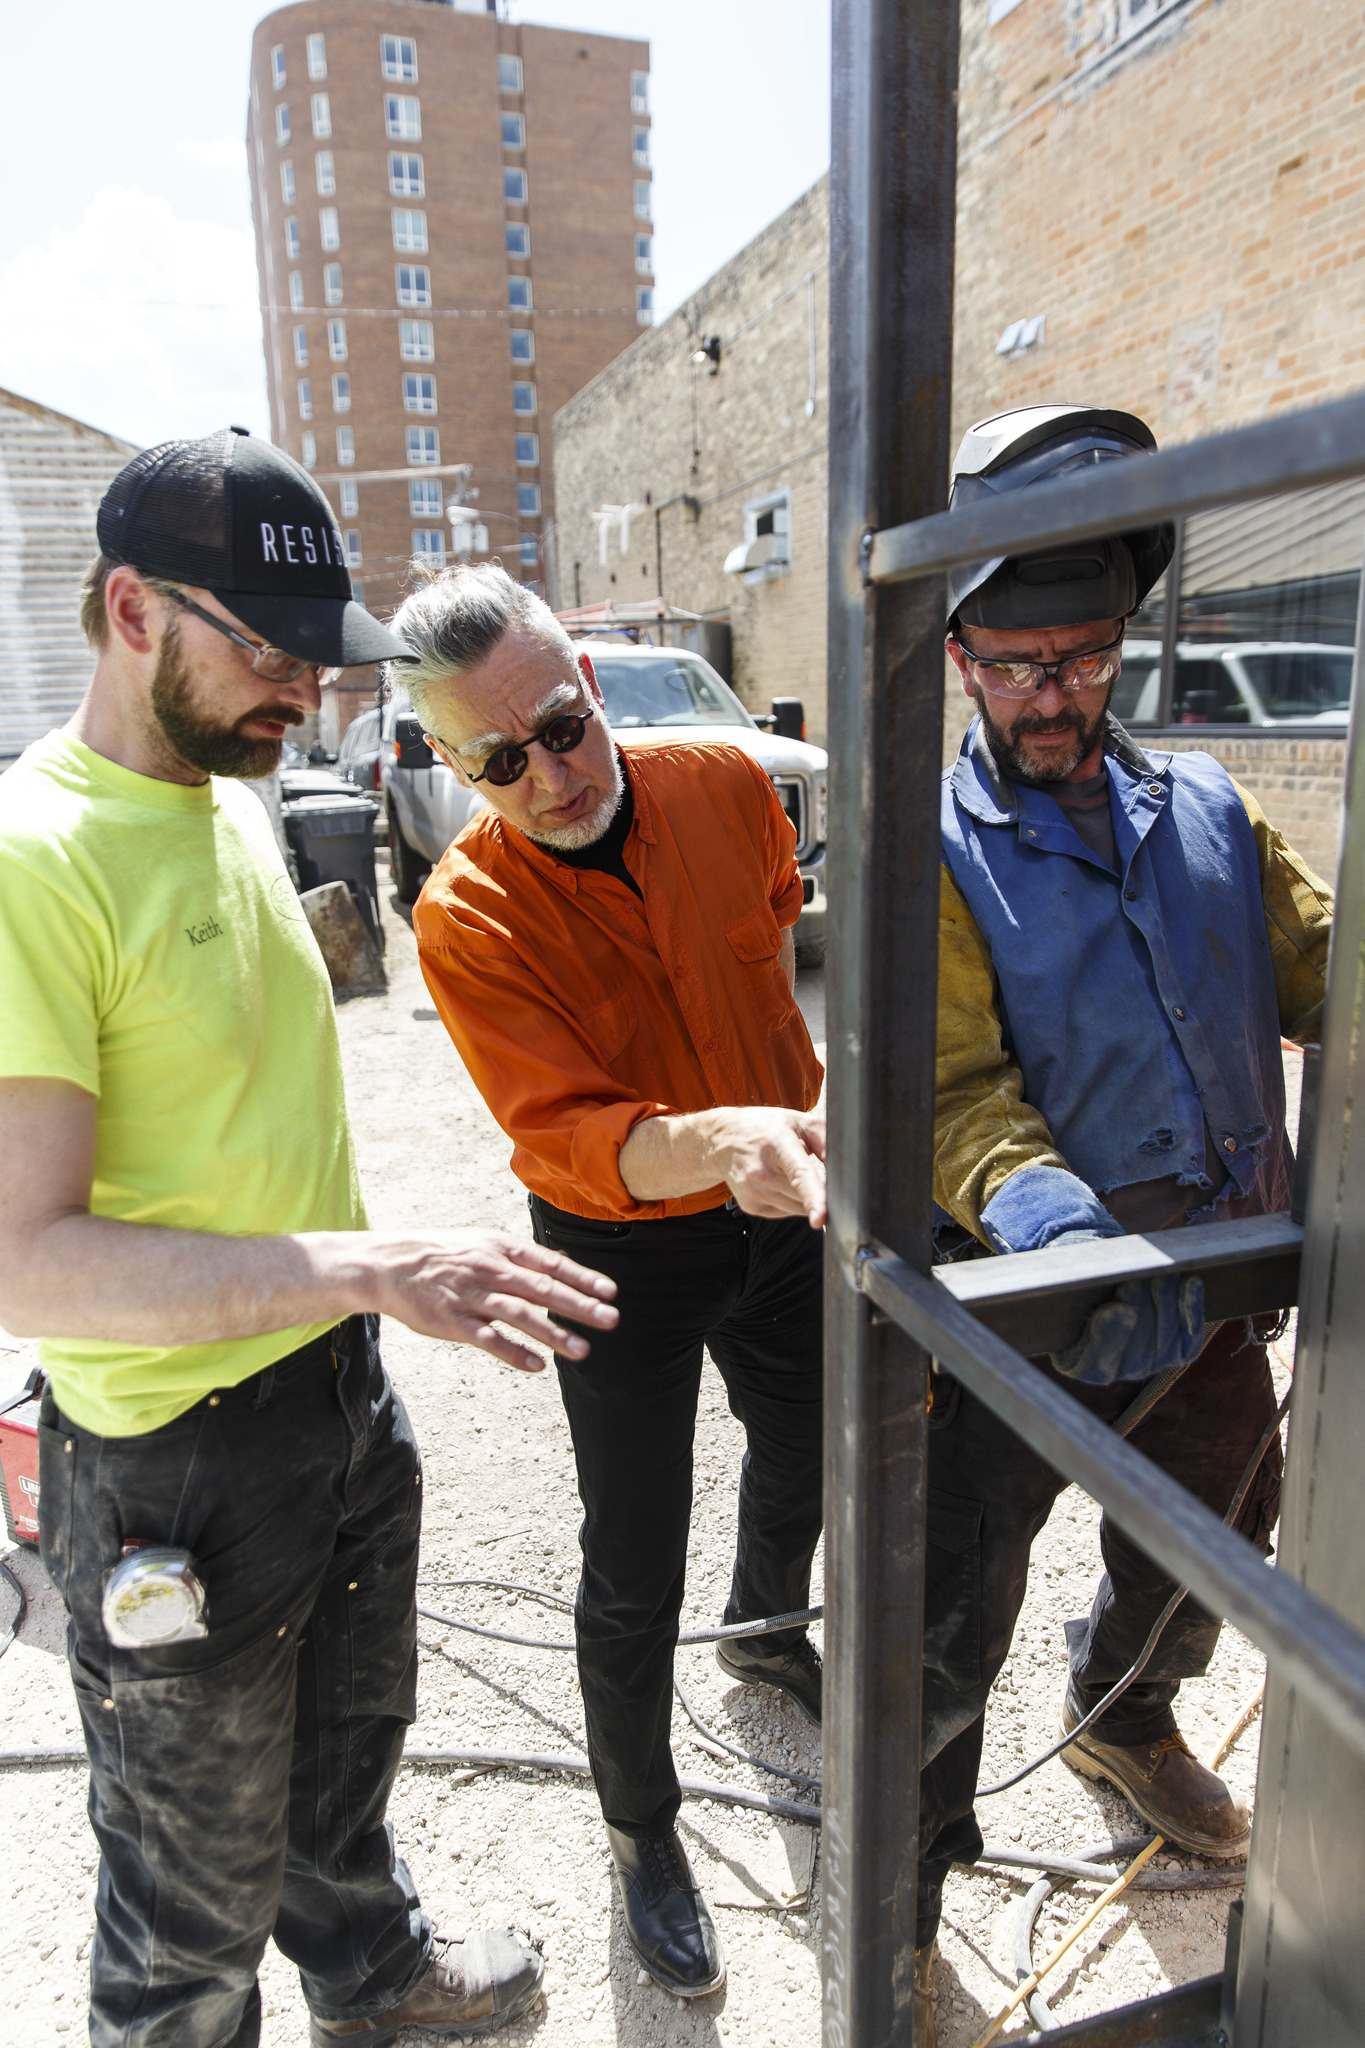 MIKE DEAL / WINNIPEG FREE PRESS</p><p>Keith Funk-Froese (from left), Wins Bridgman and construction worker John Smith go over some of the details.</p>